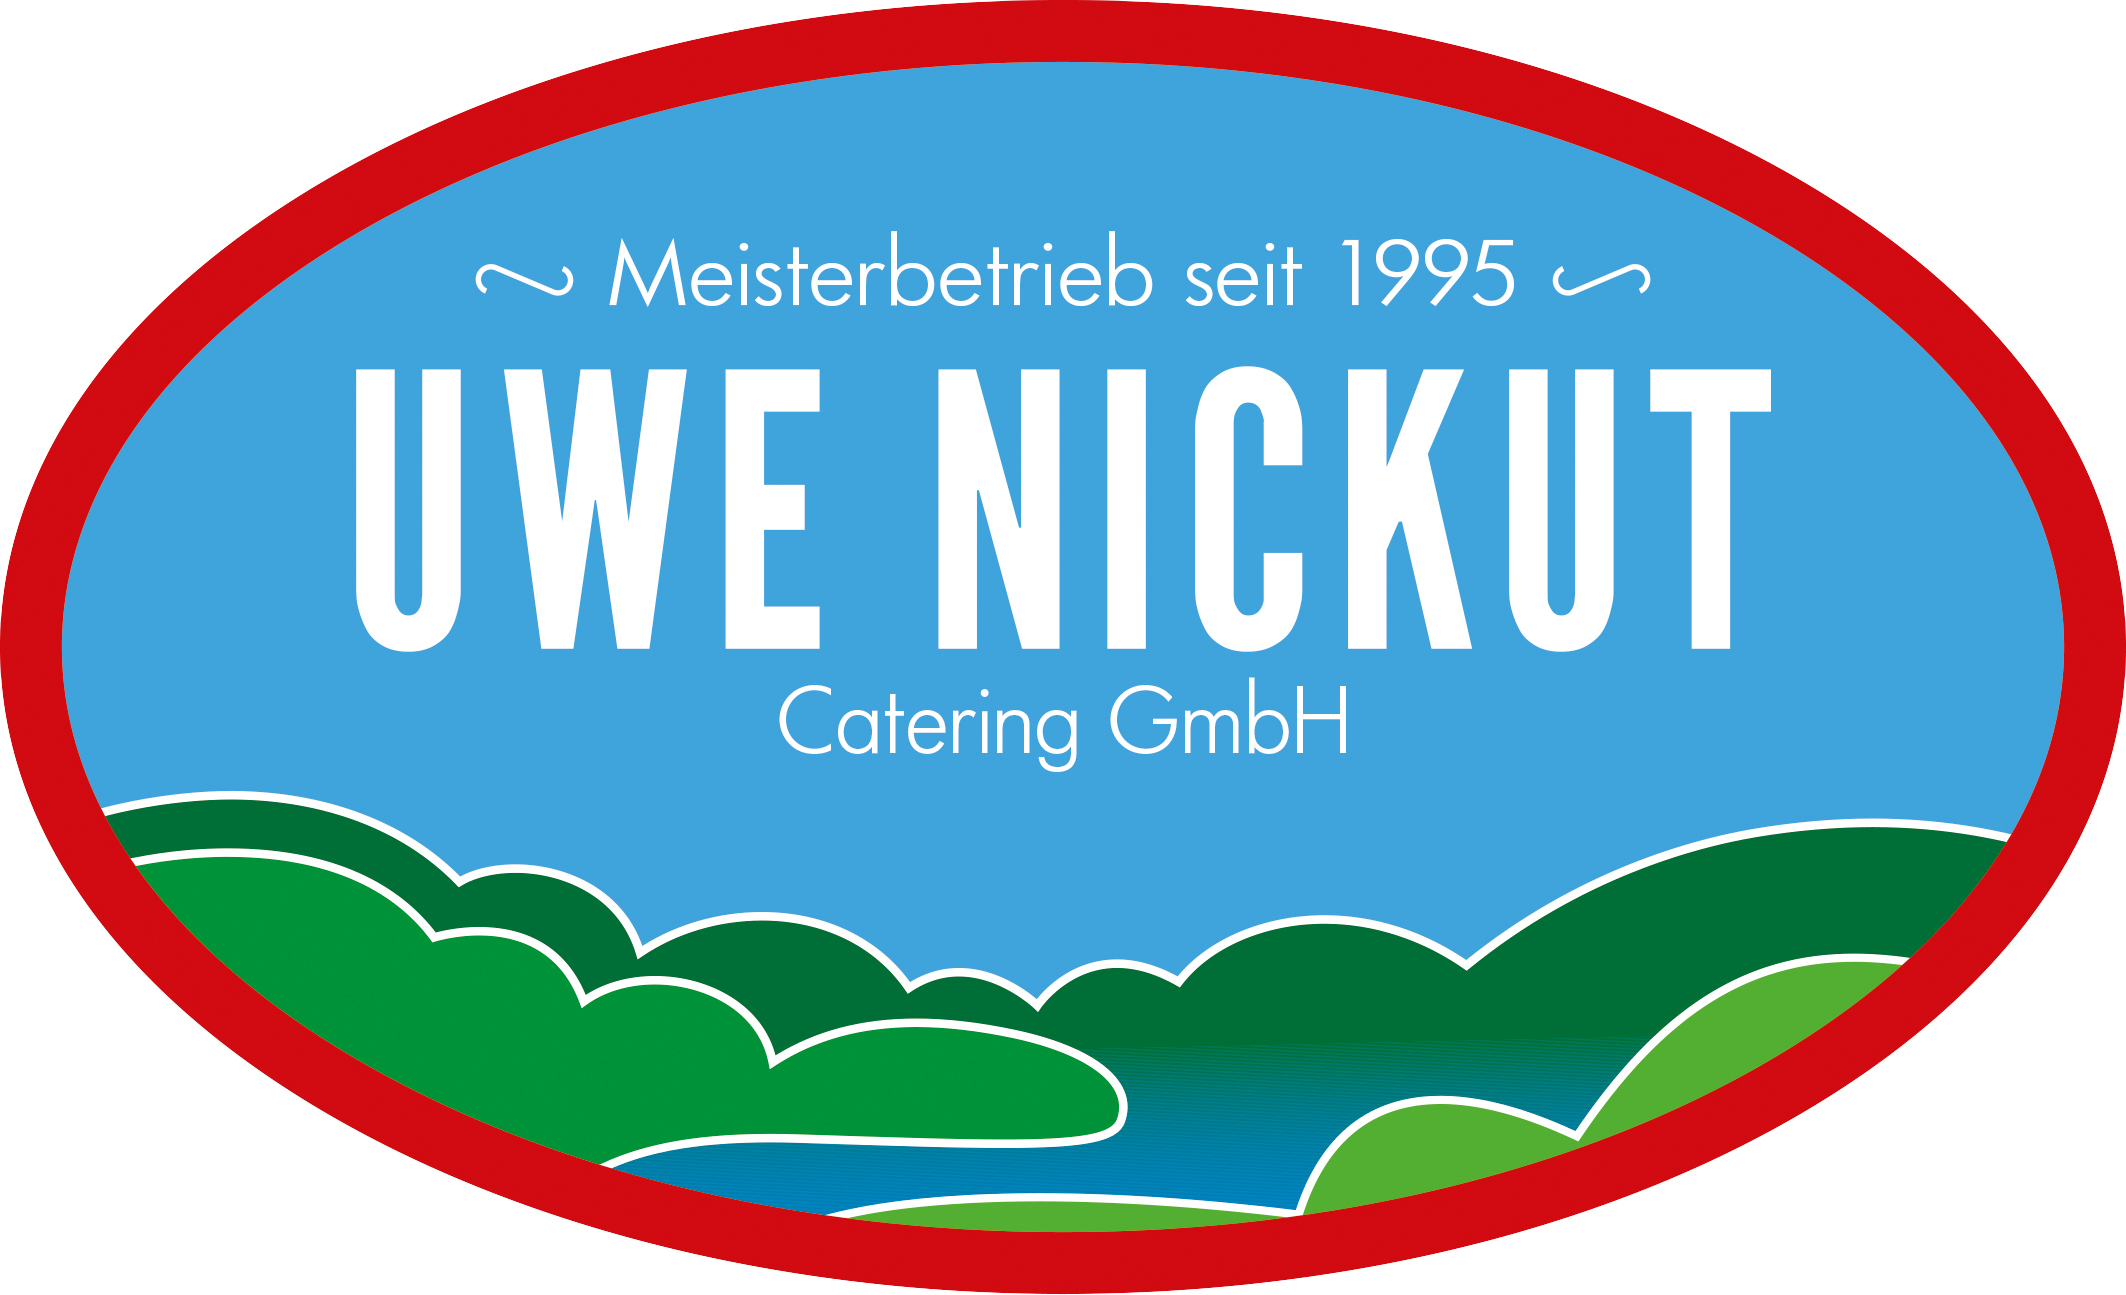 Uwe Nickut Catering GmbH